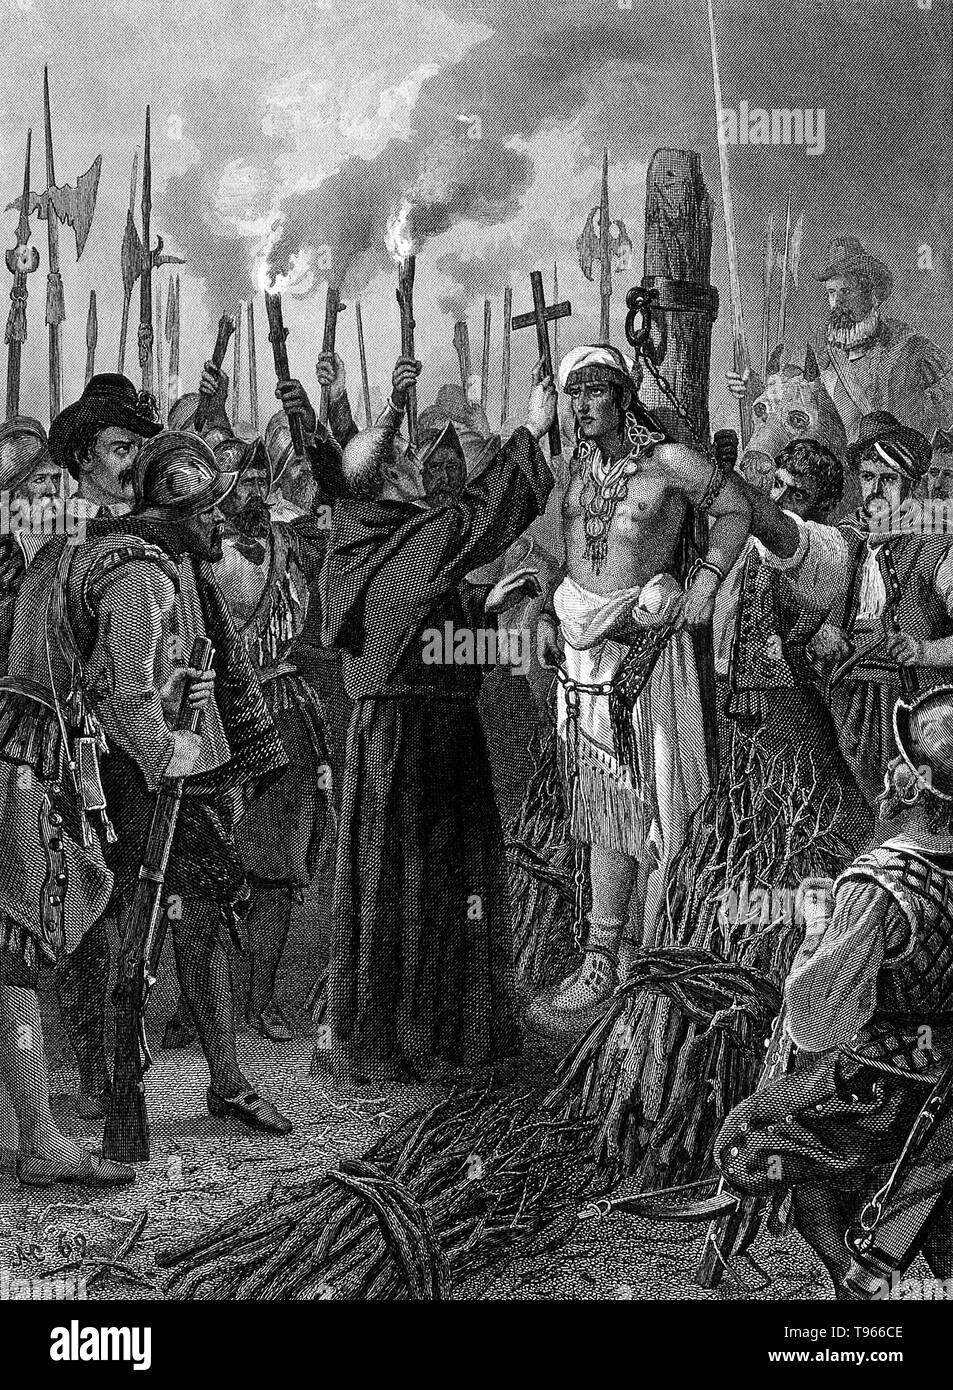 Engraving depicting the execution of Atahualpa Atahualpa (1497-1533) was the last sovereign emperor of the the Inca Empire, prior to the Spanish conquest of Peru. During the Spanish conquest of the Inca Empire, the Spaniard Francisco Pizarro captured Atahualpa and used him to control the Inca empire. The outnumbered Spanish saw Atahualpa as too much of a liability and decided to execute him. - Stock Image